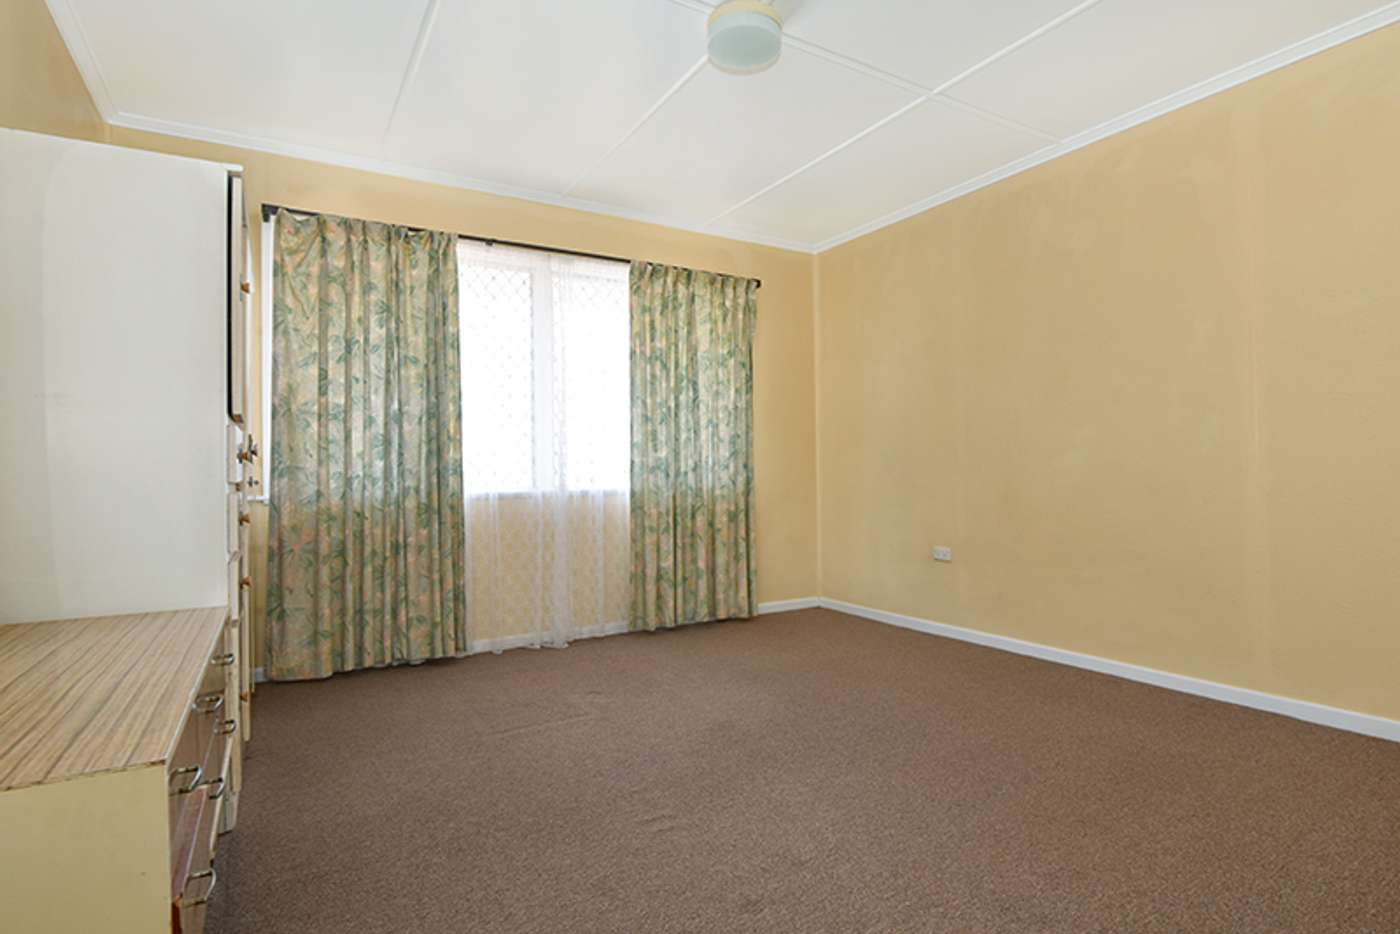 Sixth view of Homely house listing, 17 Lyndall Street, Harristown QLD 4350